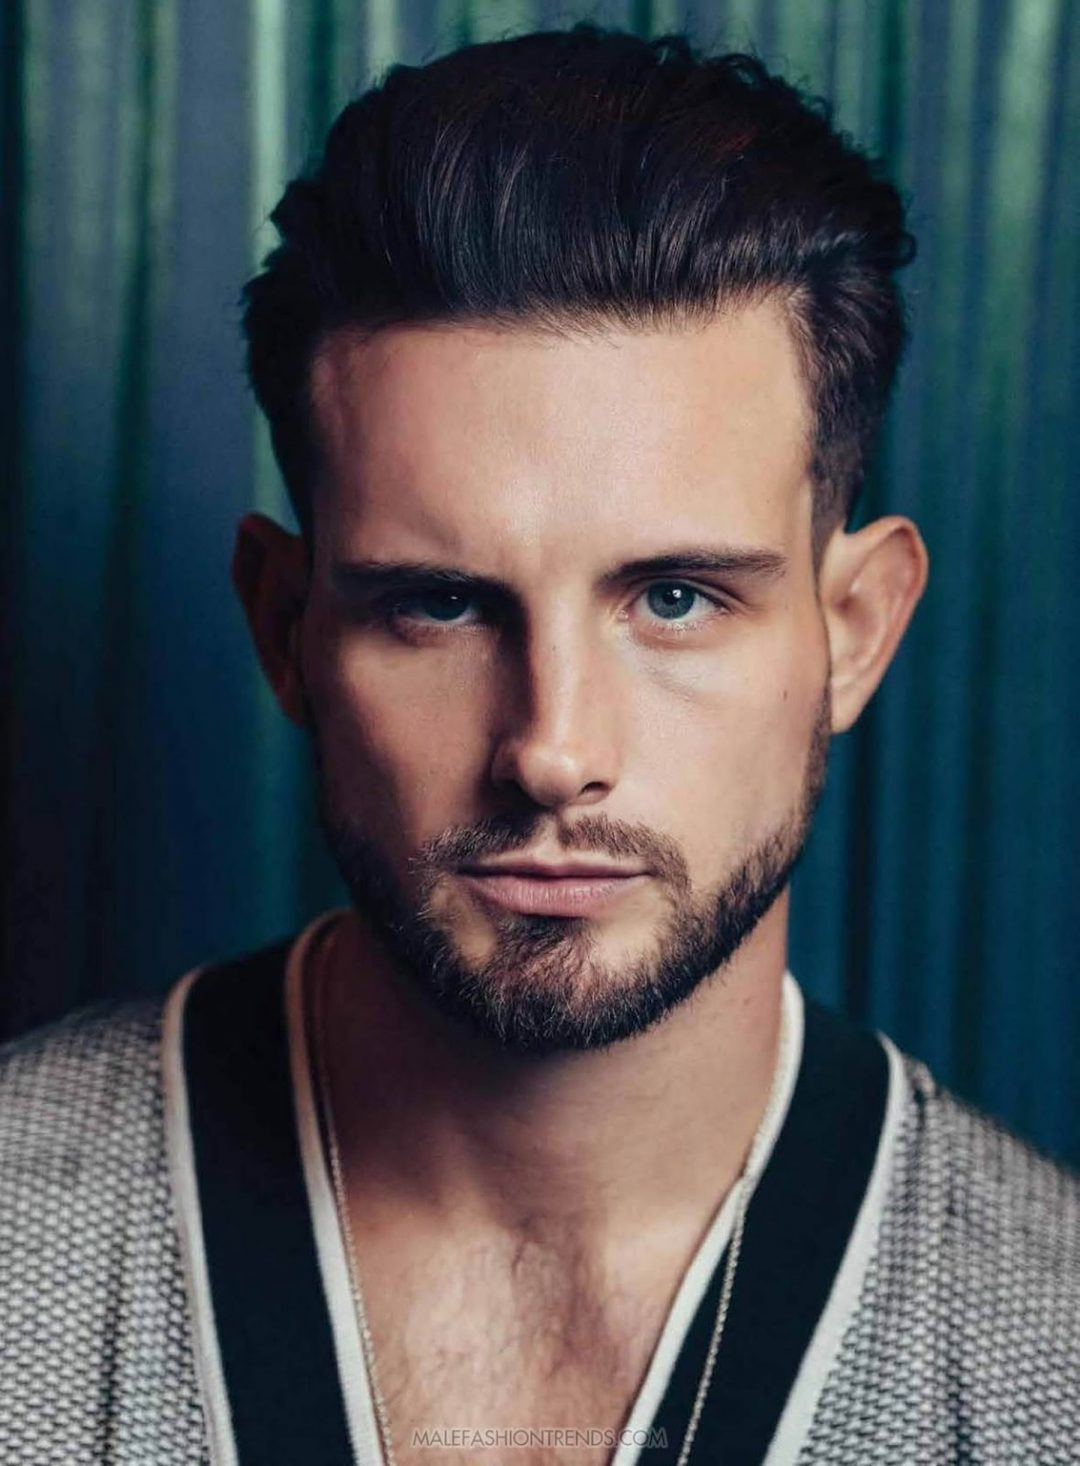 Nico Tortorella on putting Bi in LGBTI+ 9